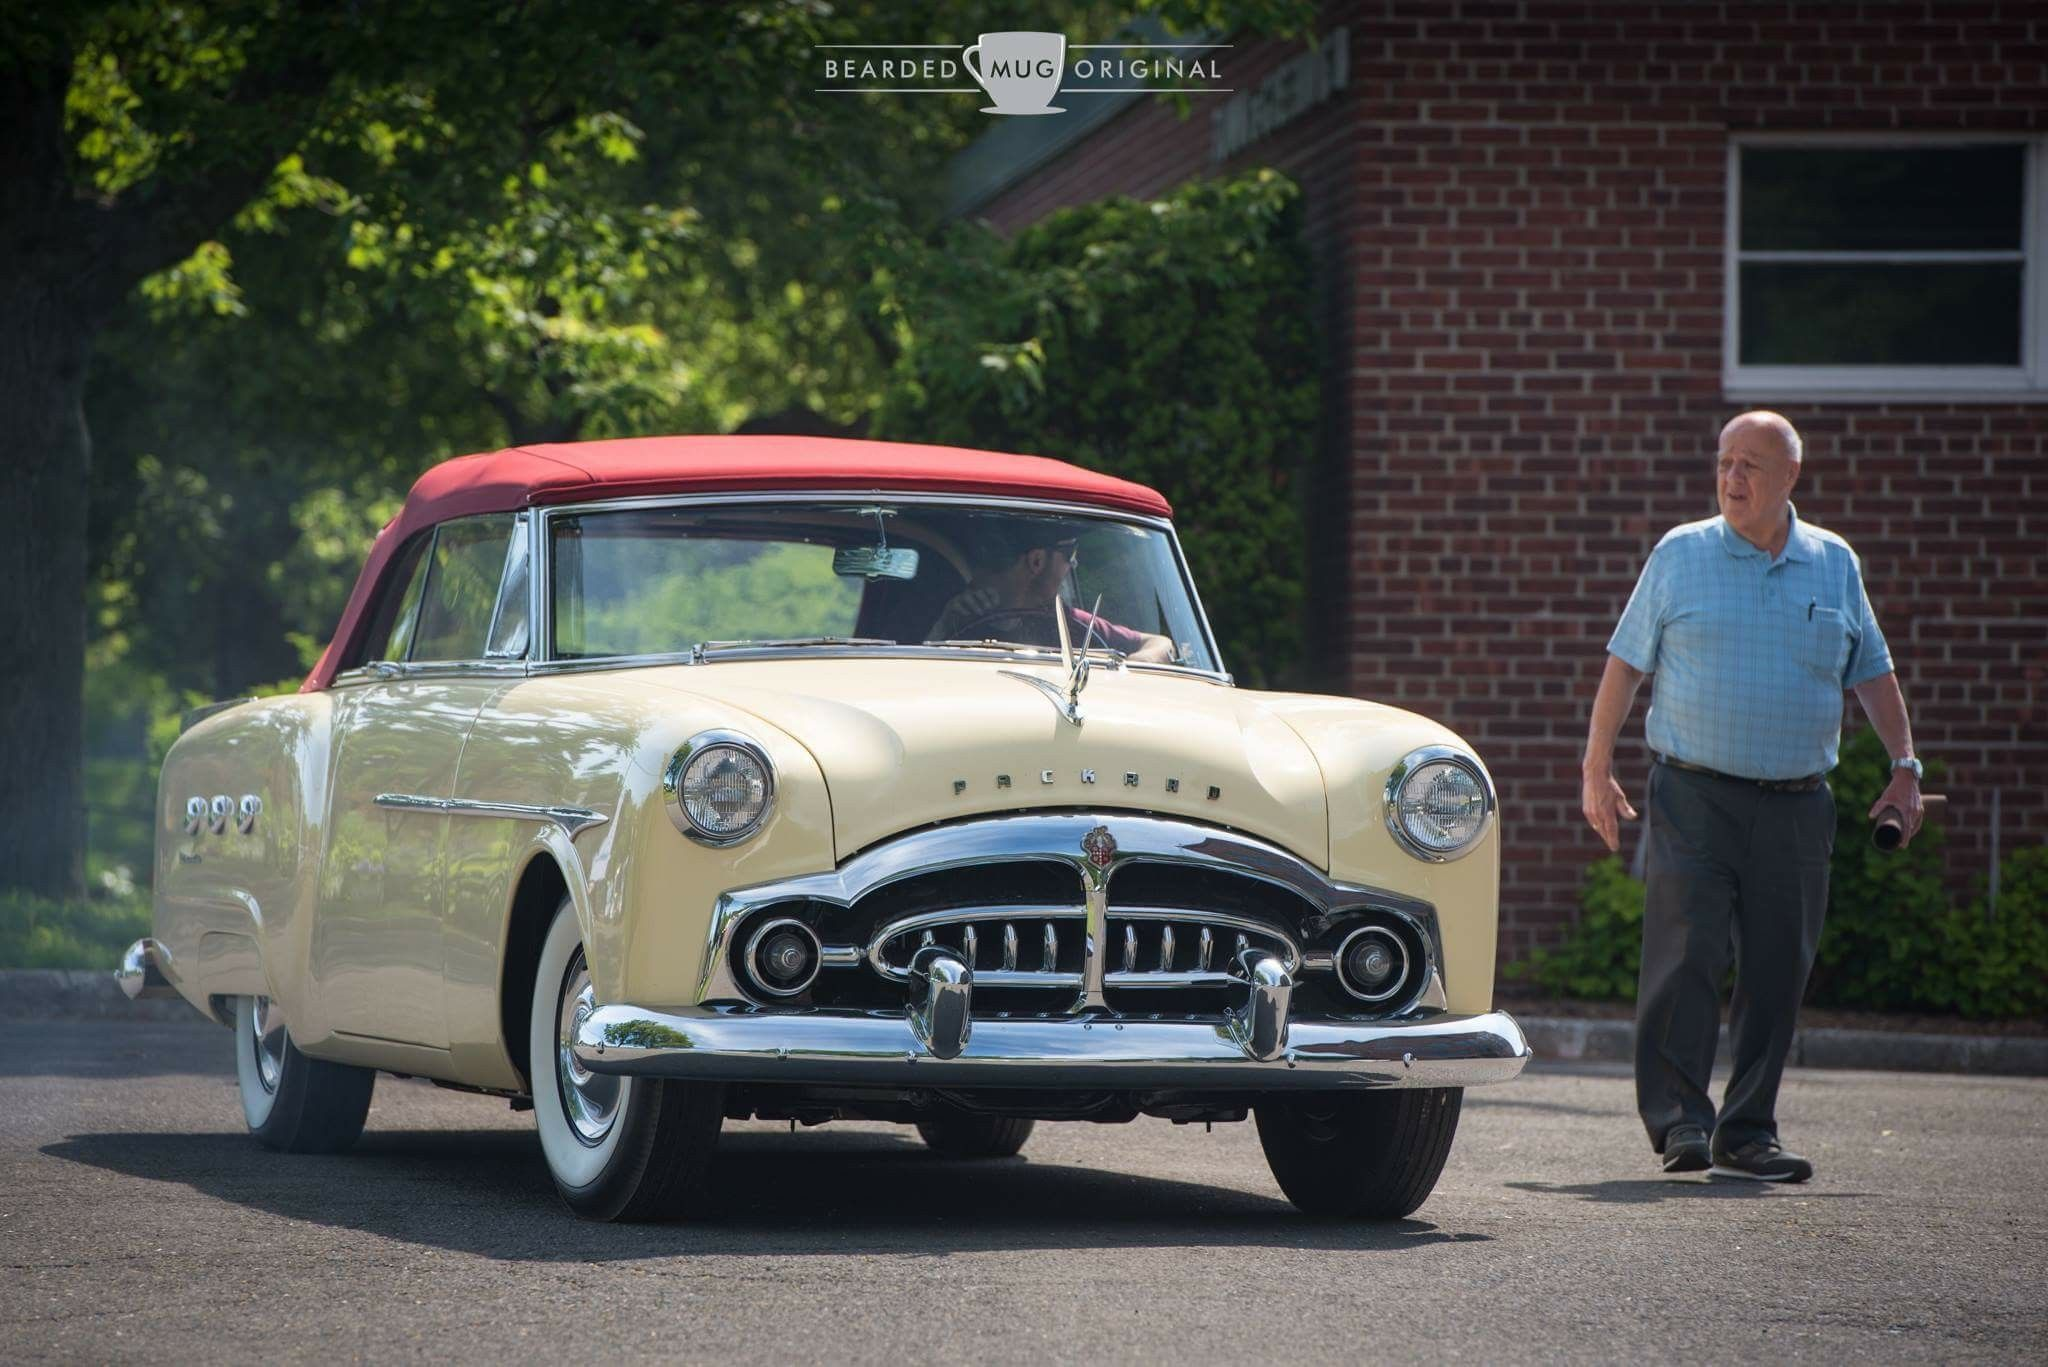 Pin by Daniel White on Packardization | Pinterest | Cars and Car stuff